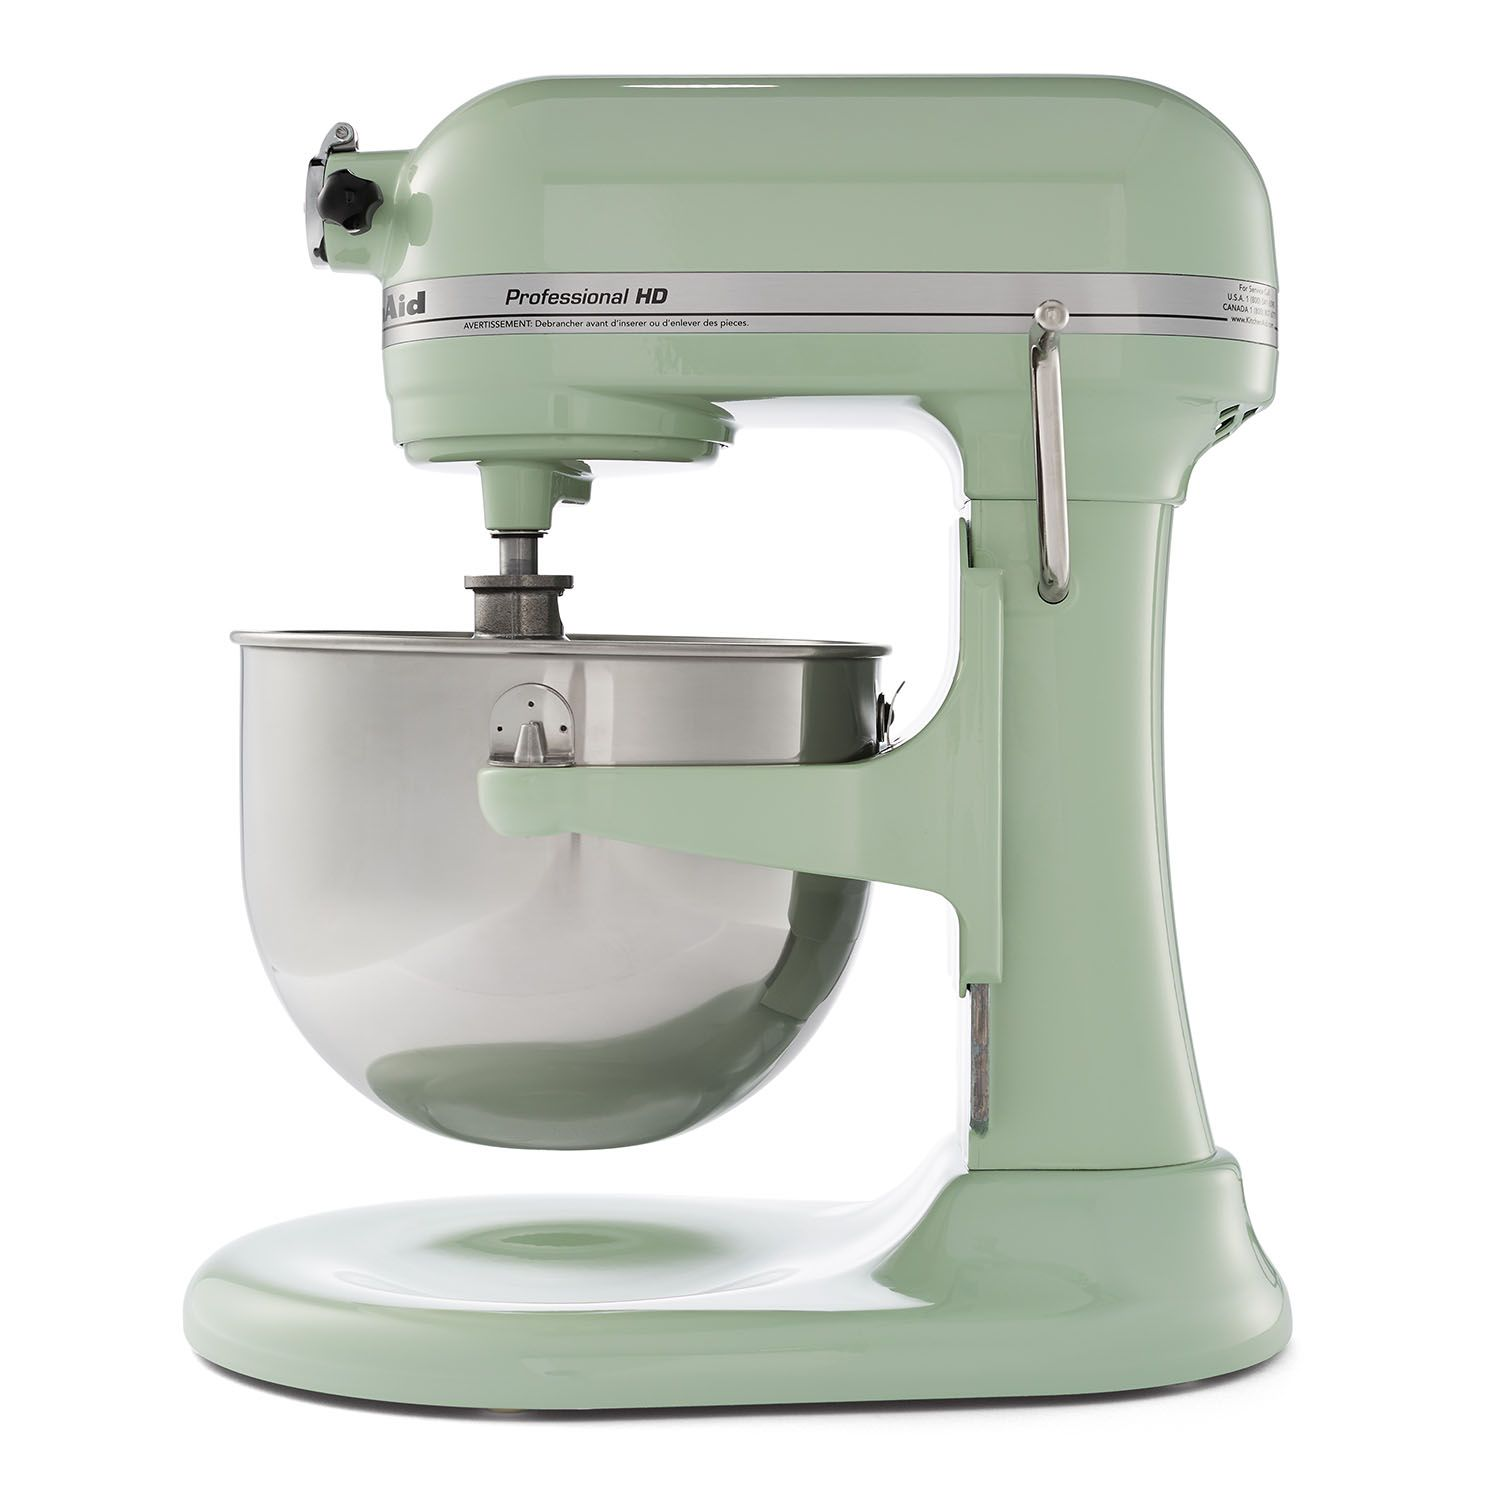 Attractive Kitchenaid Professional Hd Stand Mixer Pistachio Walmart  sc 1 st  Home Design Ideas & Pistachio Kitchenaid Mixer - Home Design Ideas and Pictures